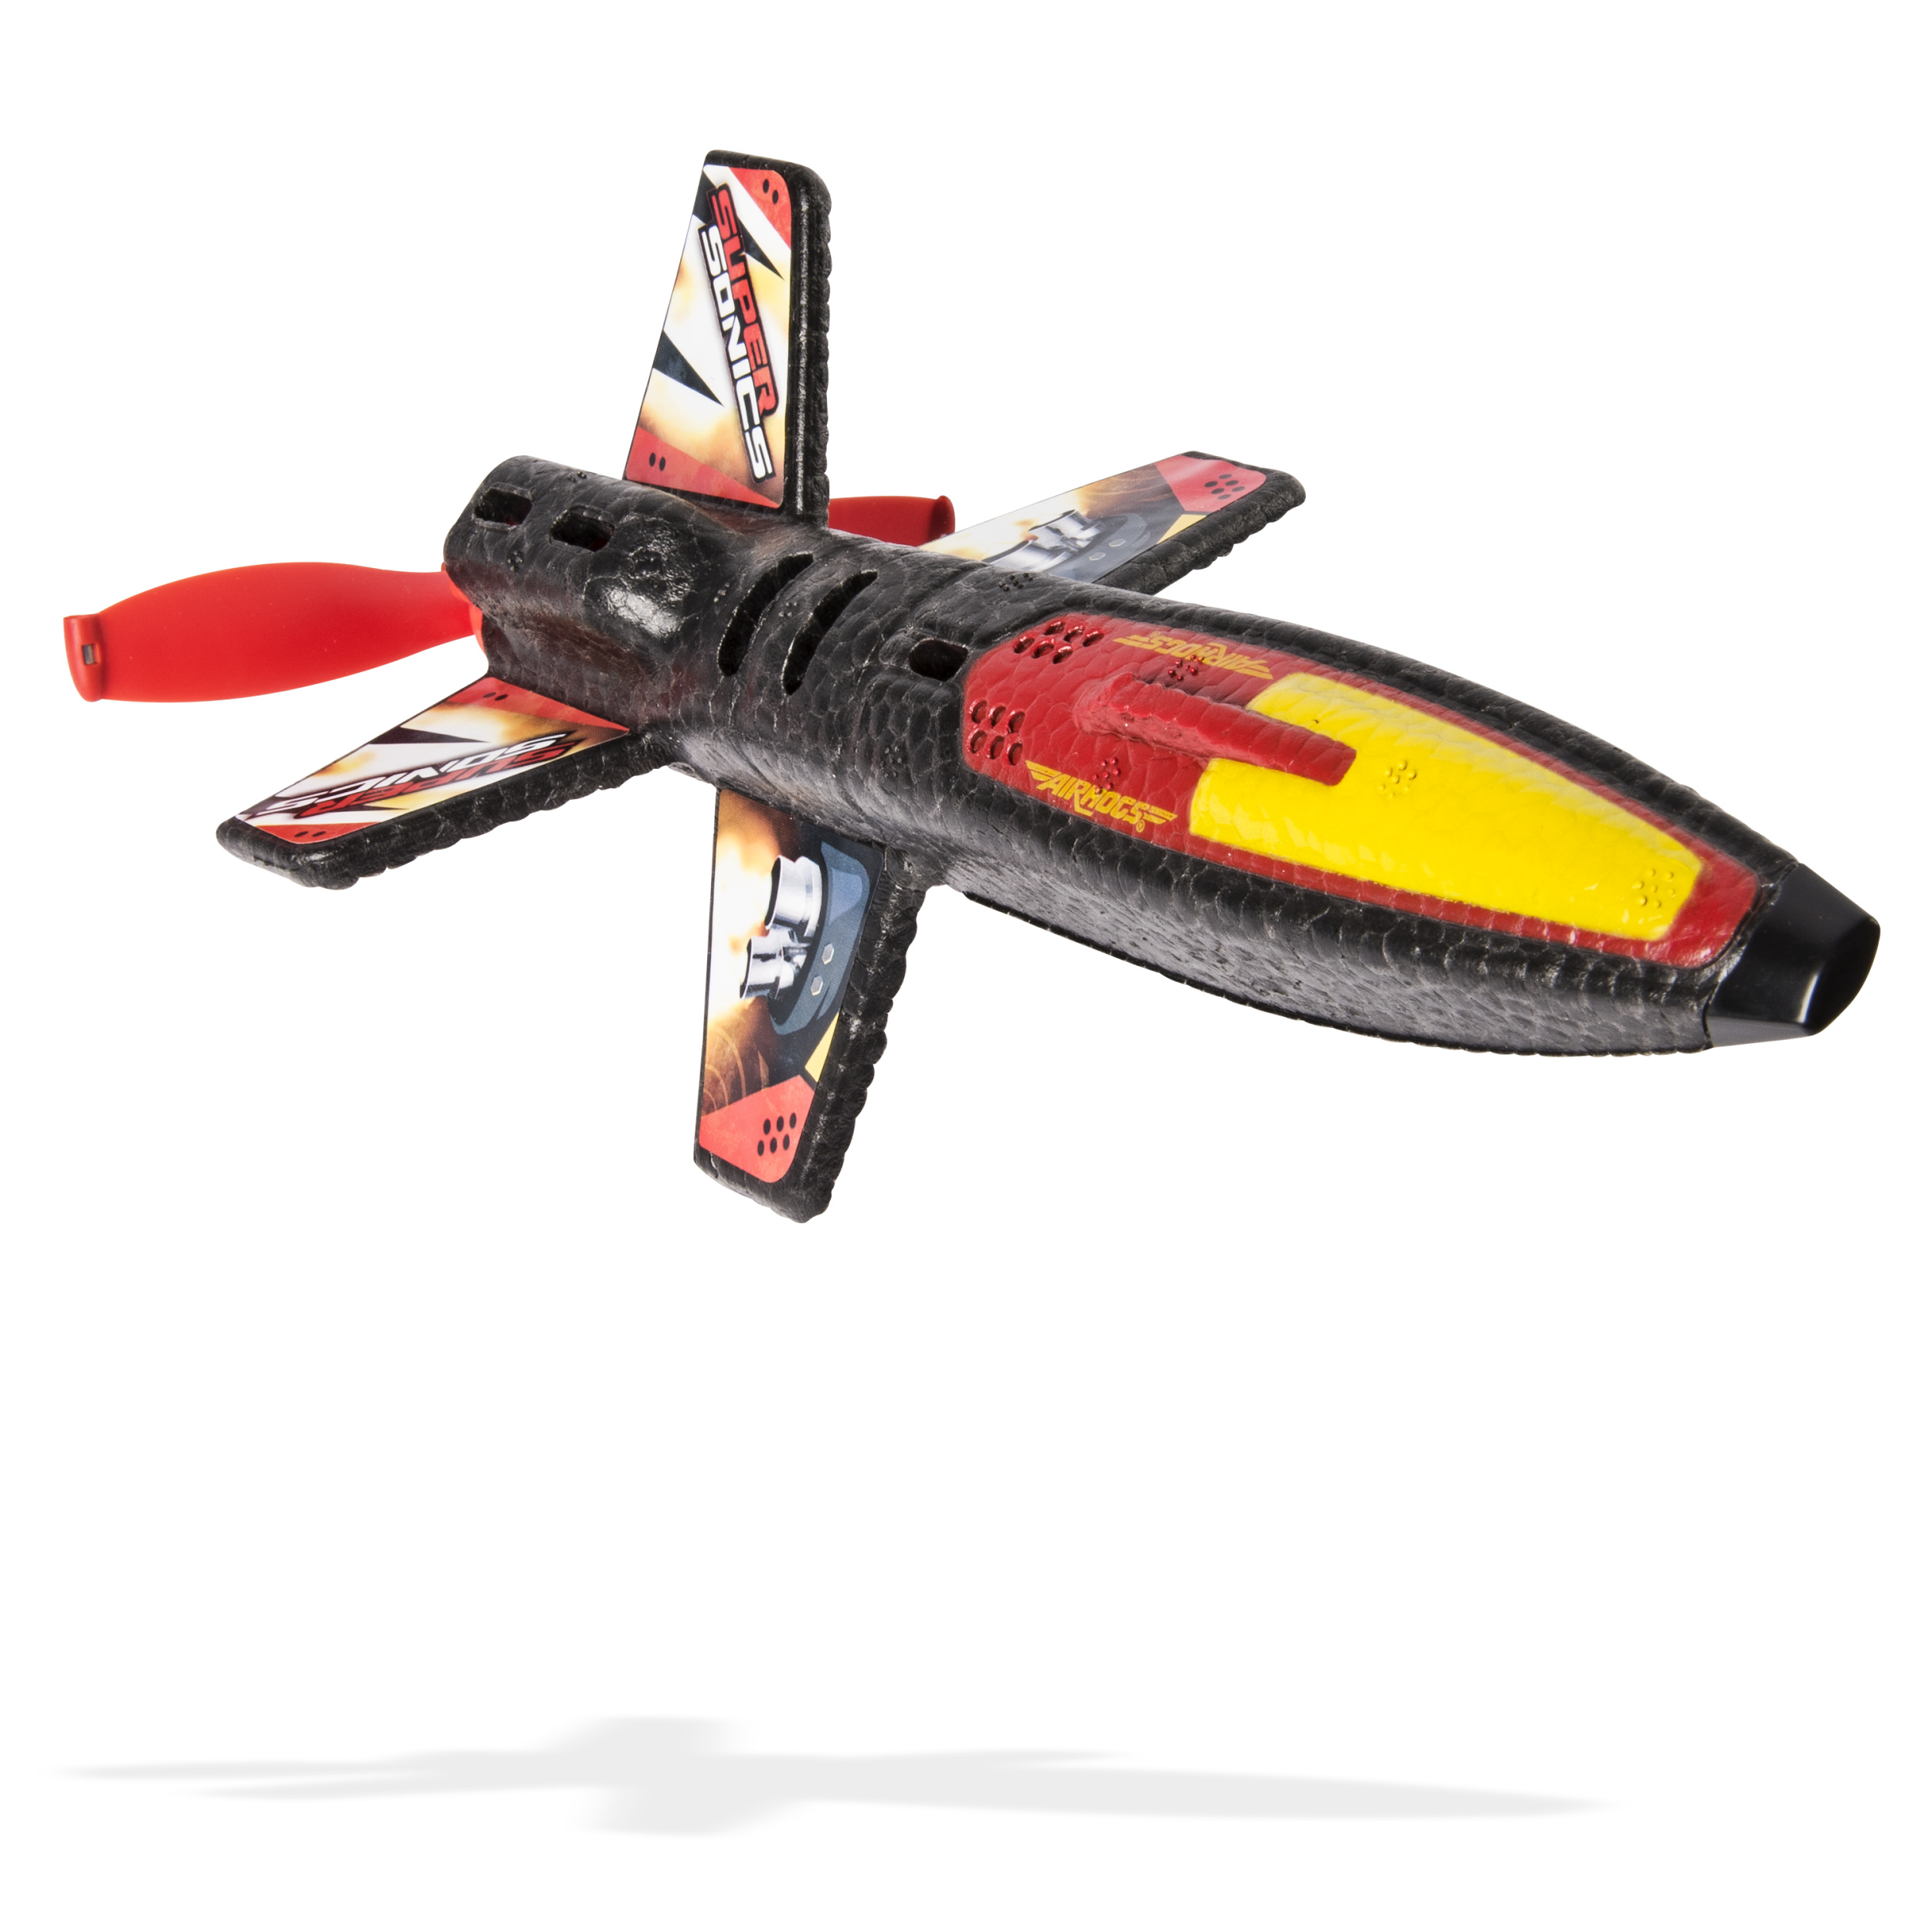 NEW Air Hogs Sonic ROCKET High-Flying Motorized Model Rocket Toy Up To 200 FEET!